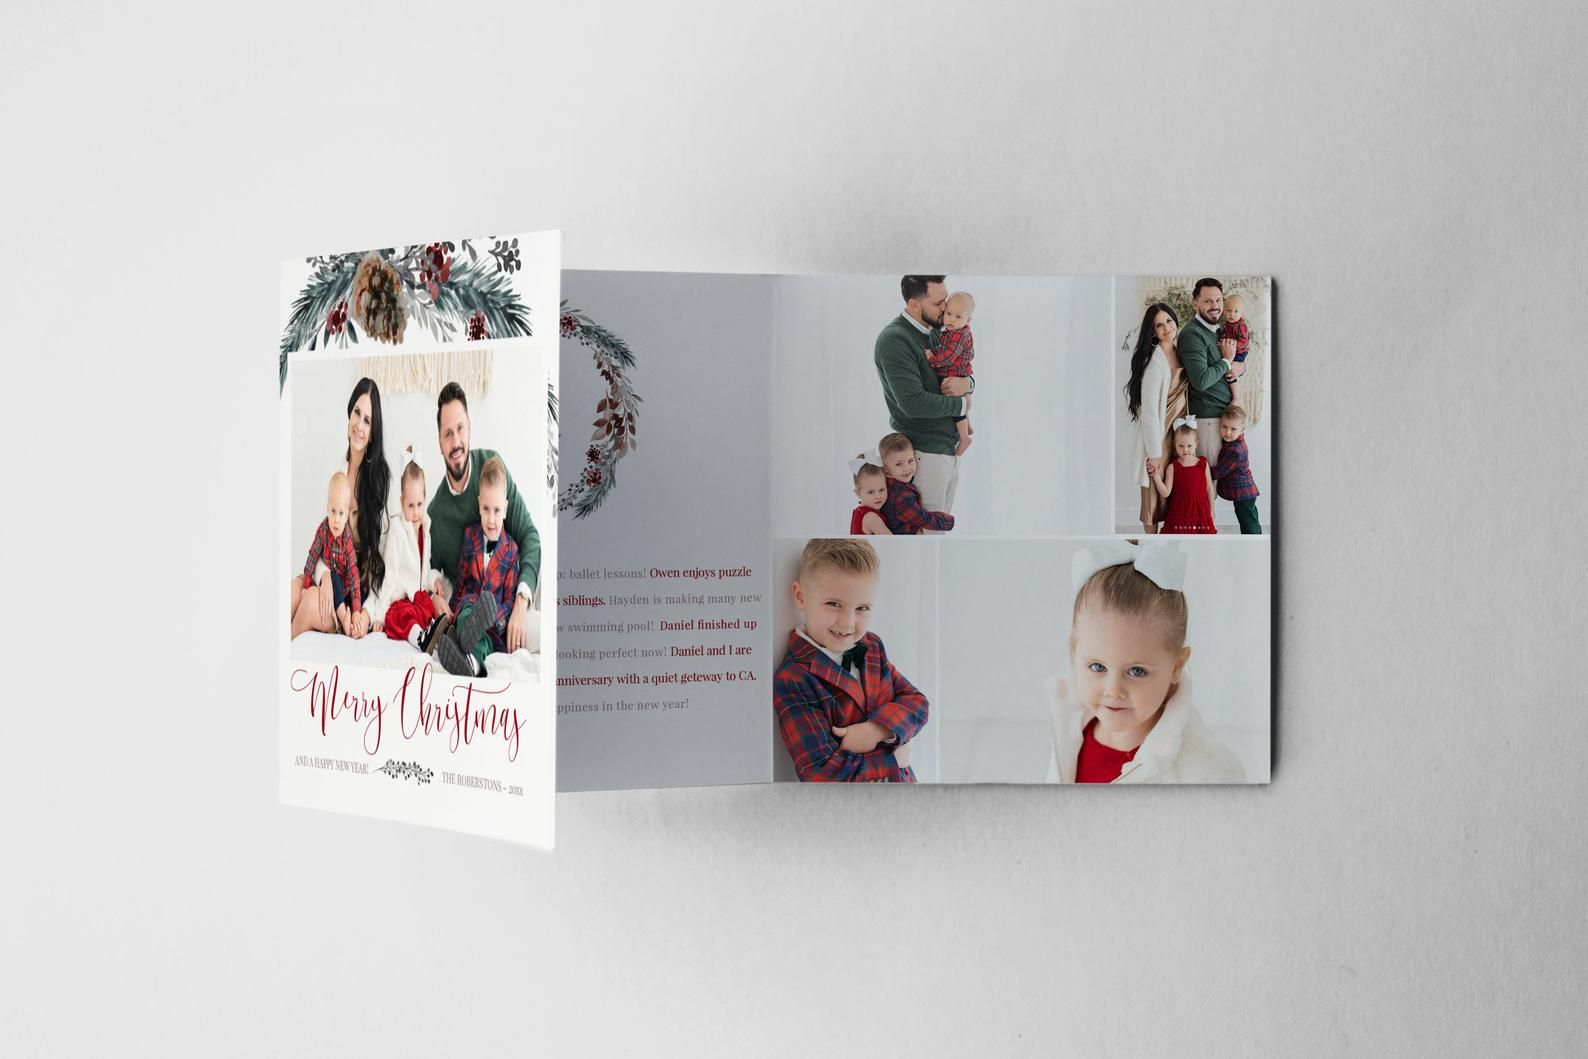 Merry Christmas 5x5 Trifold Photo Card Template Trifold Etsy Photo Card Template Holiday Photo Cards Design Christmas Photo Card Template